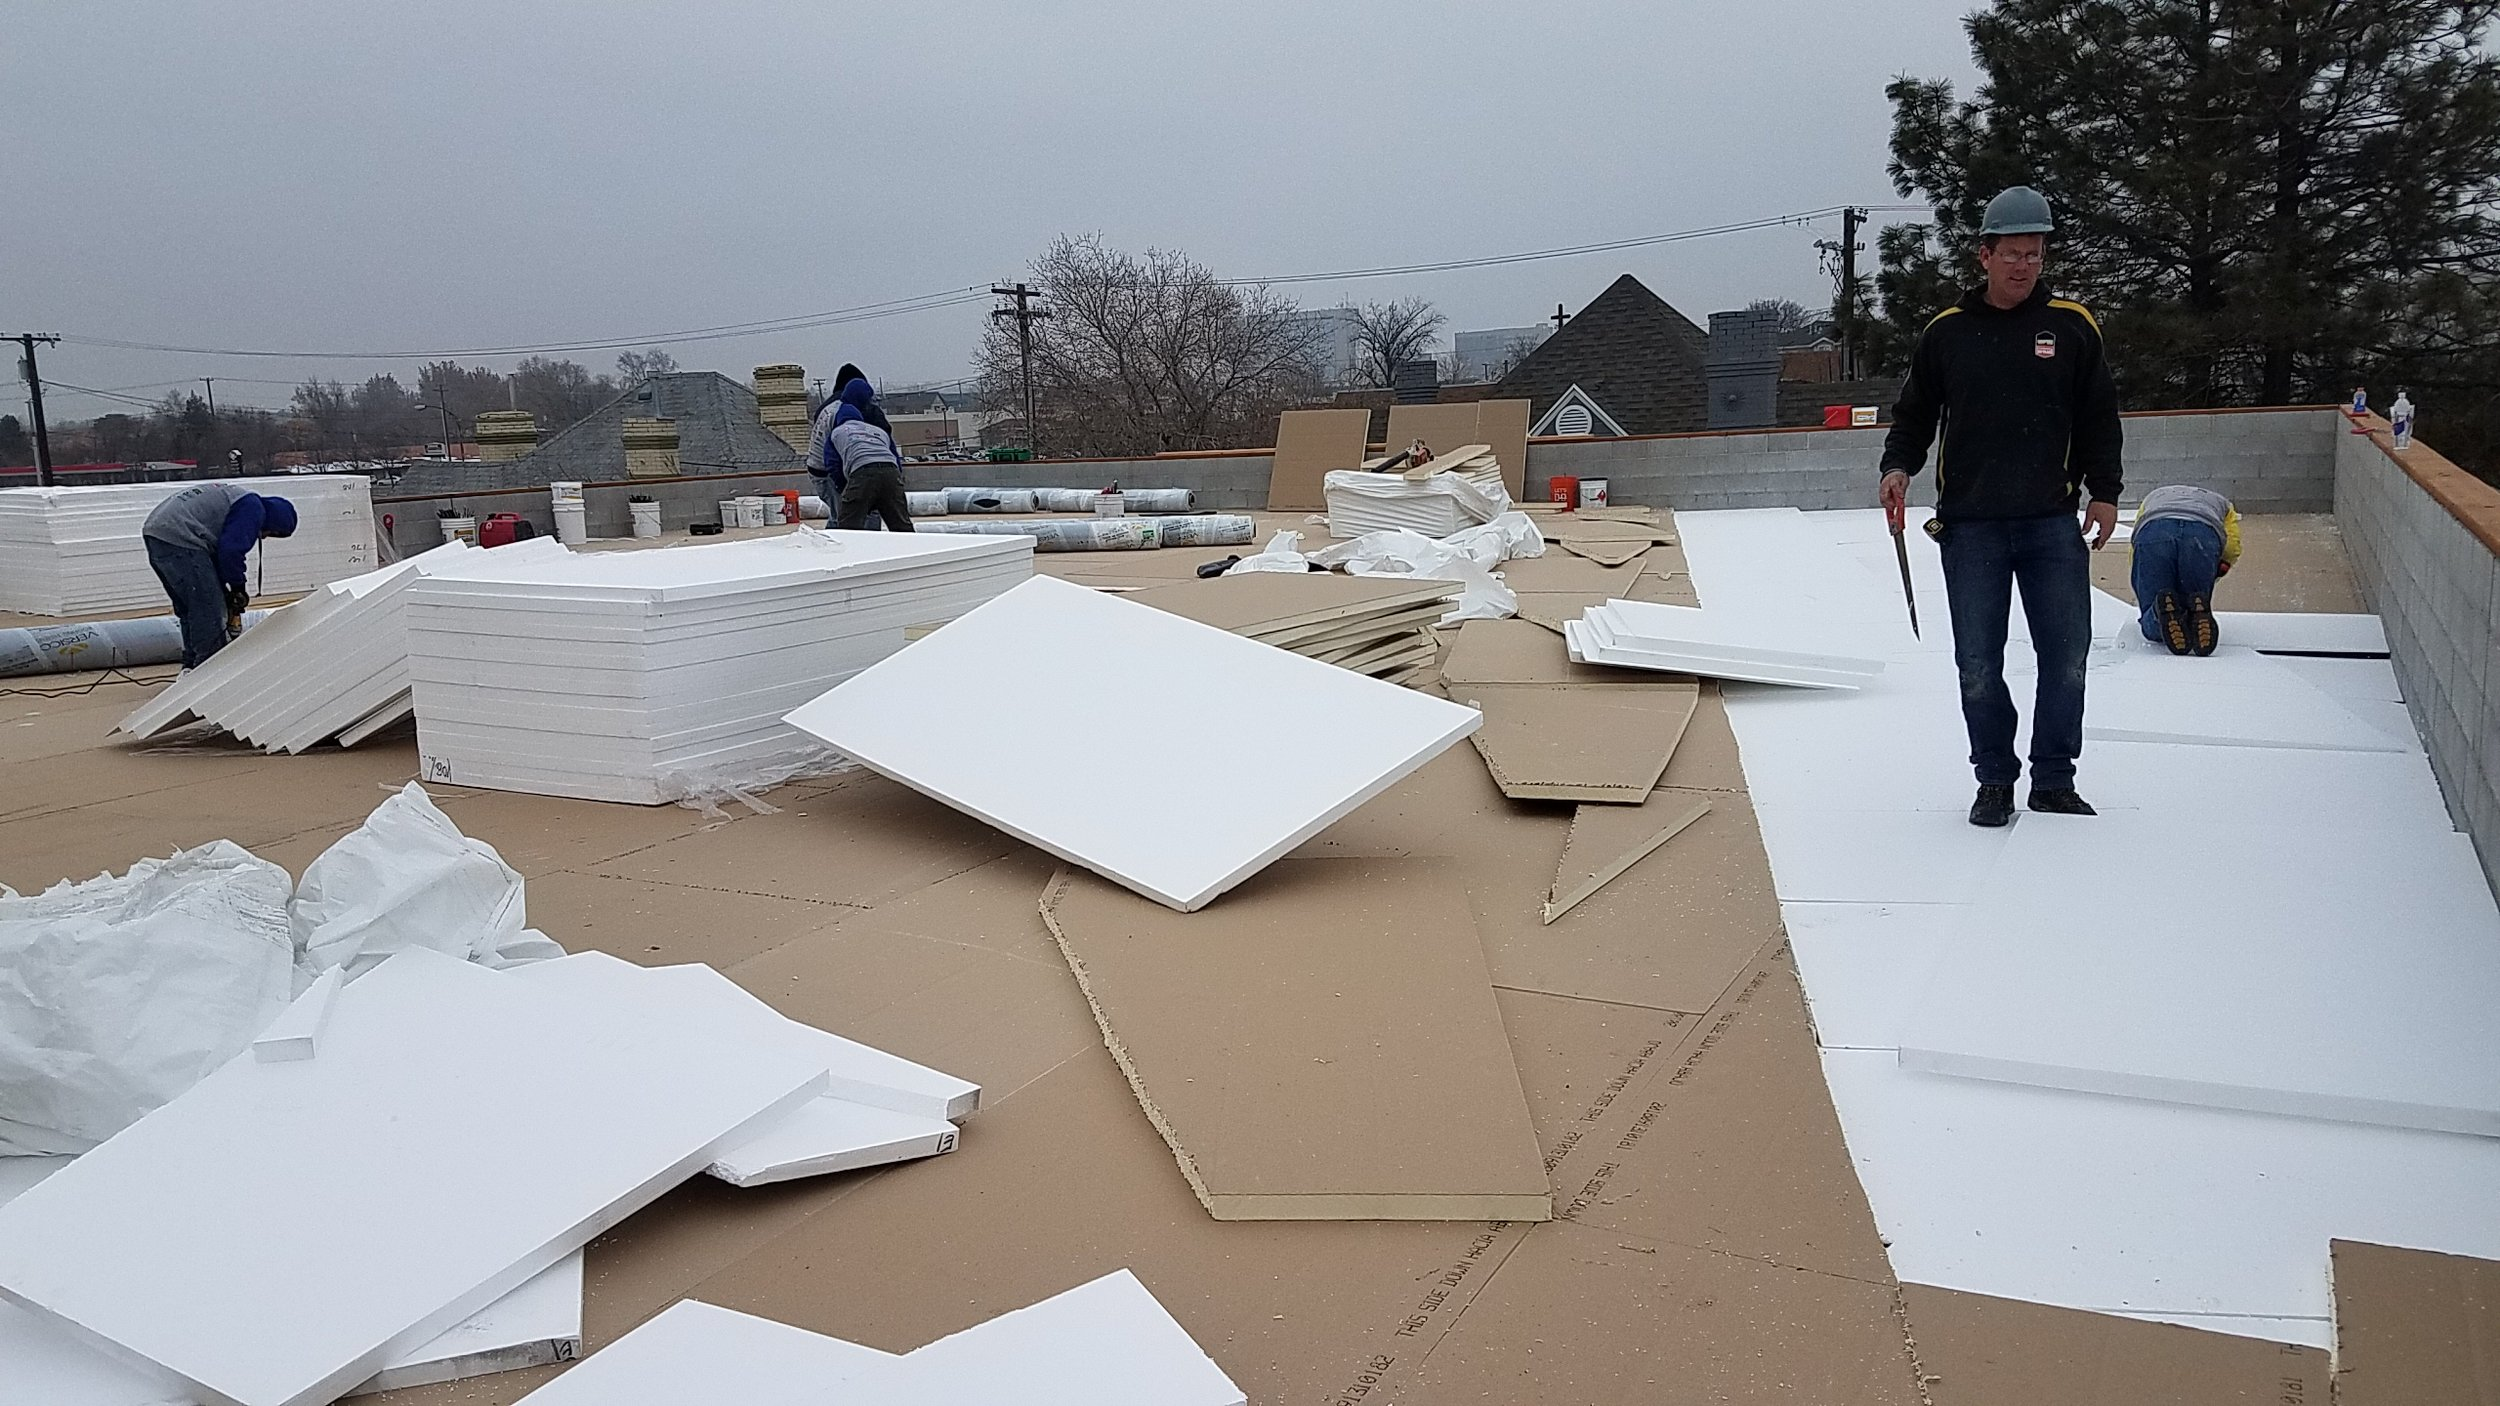 Setting the foam insulation on the roof.